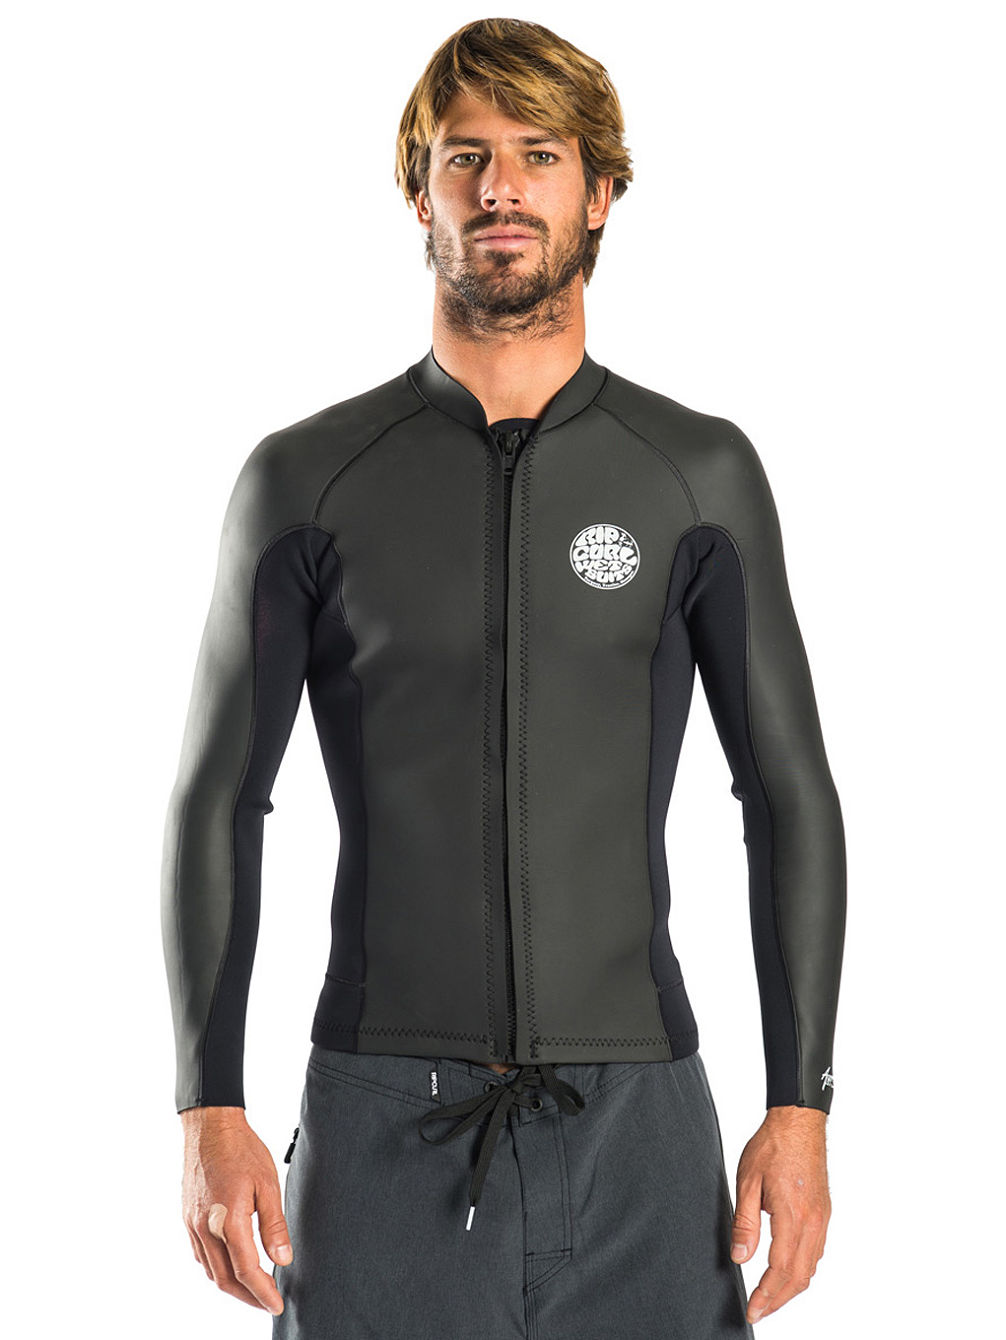 Aggro 1.5mm Rash Guard LS